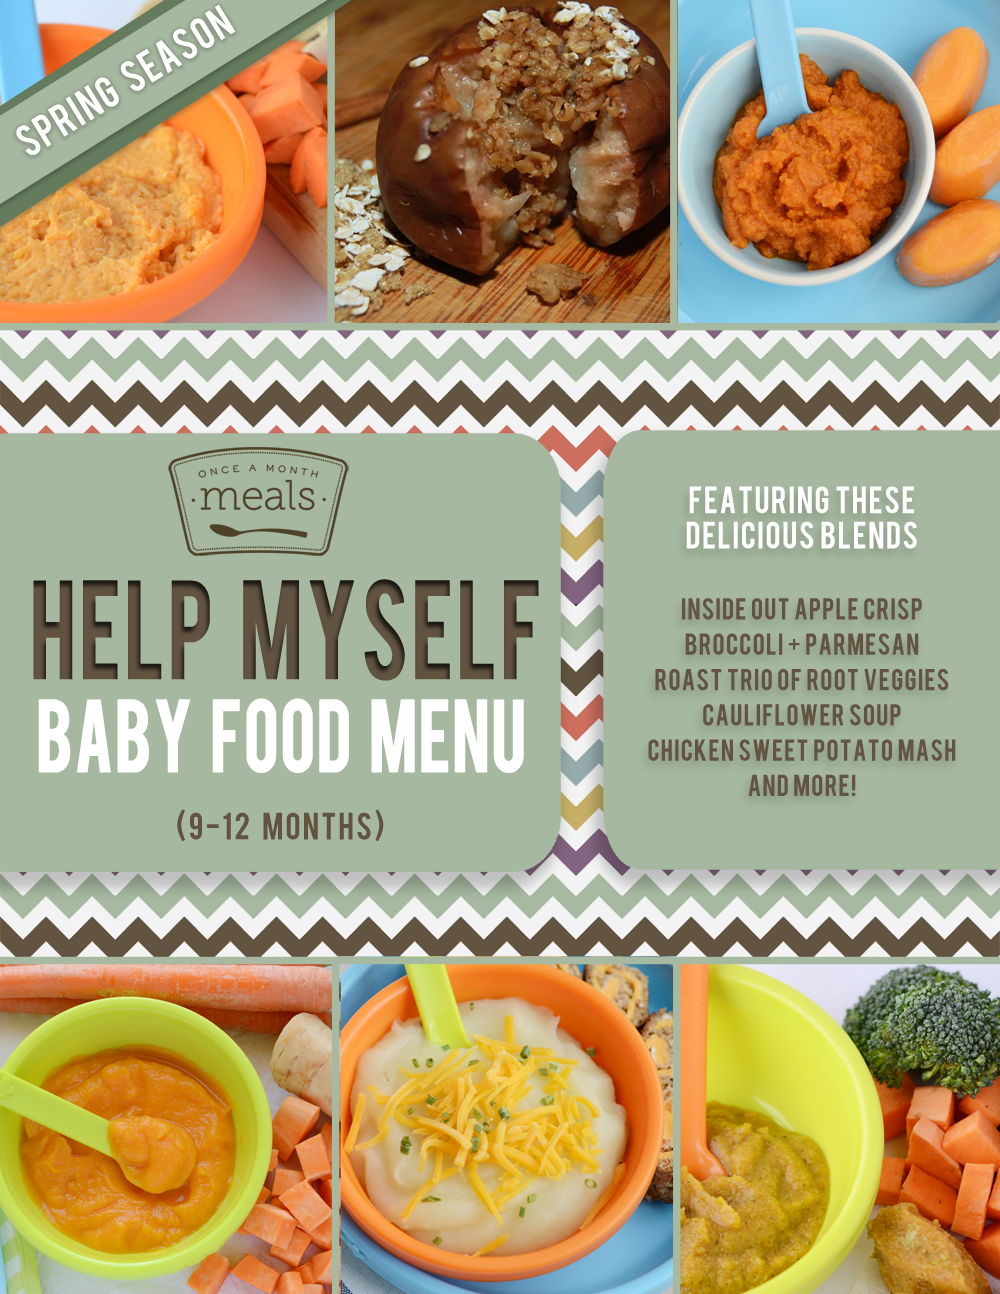 Help Myself Baby Food Menu - 9 to 12 months